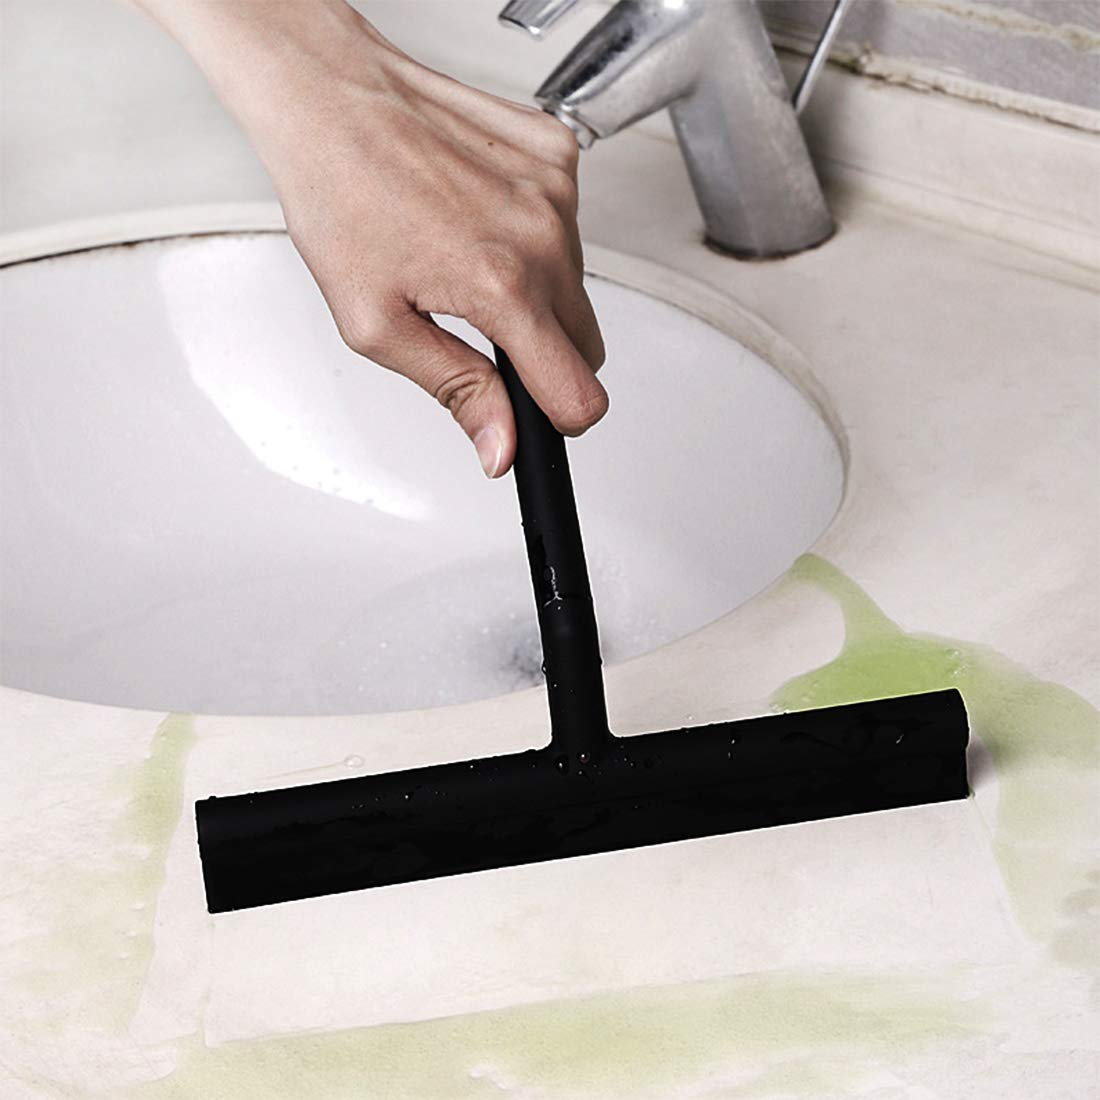 One-Piece Molding Bathroom Shower Squeegee with Hook for Shower Doors//Kitchen//Window//Car Glass//Mirror,Cleaning Brush Wiper Silicone Scraper,Rustproof,8-Inch Black